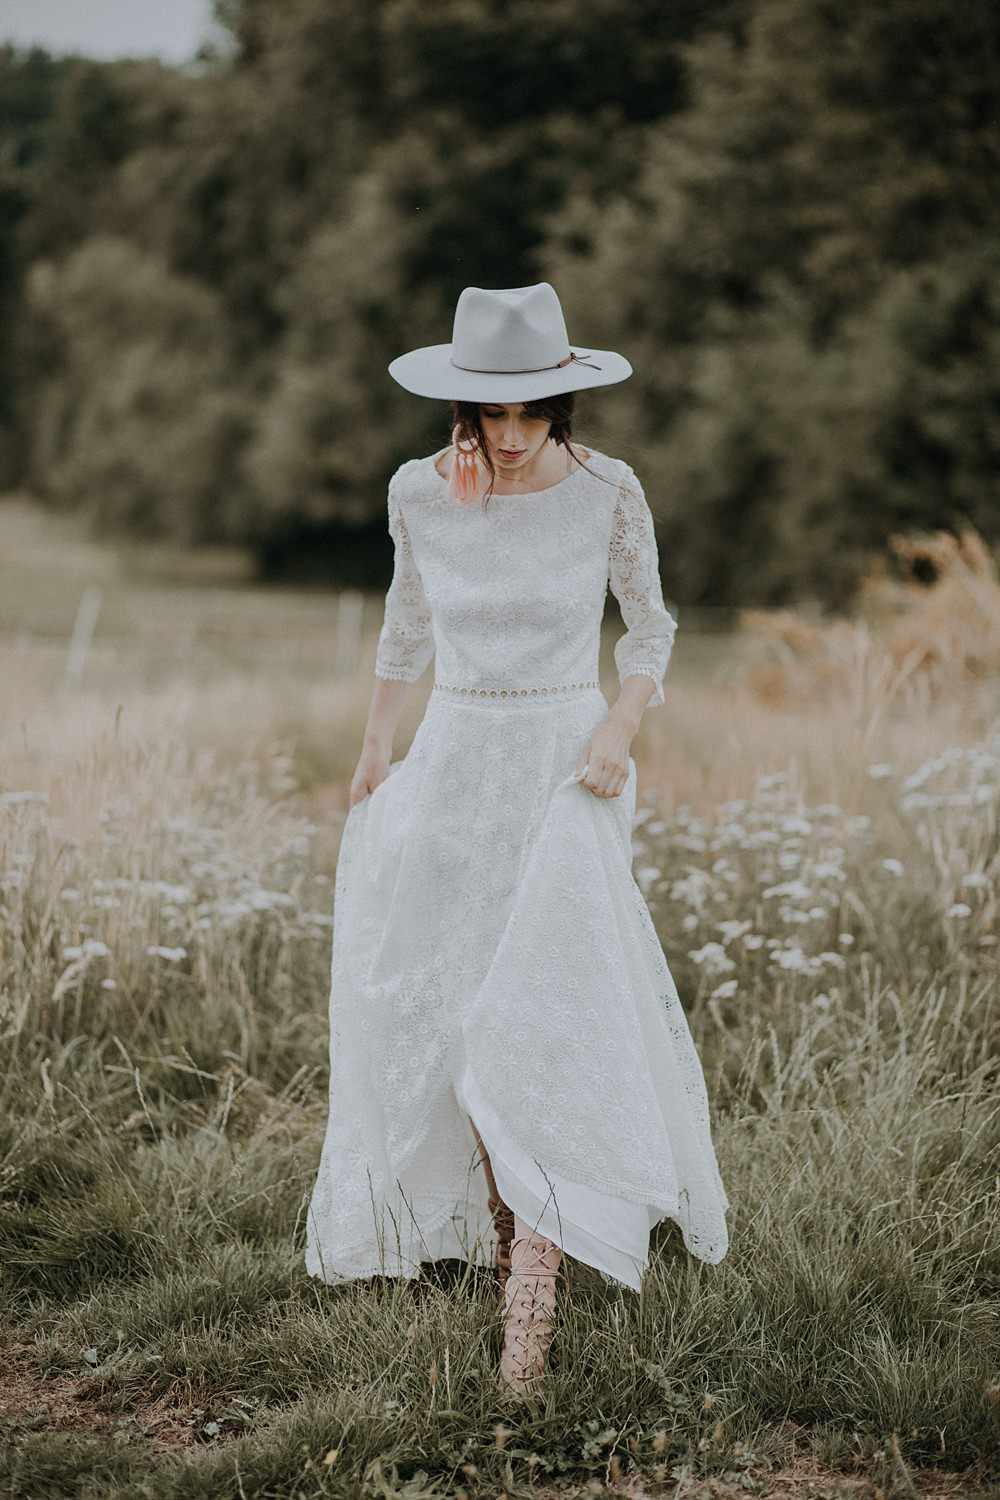 Dress Gown Bride Bridal Crochet Lace Sleeves Open Back Bohemian Woodland Wedding Ideas Lola Rose Photography